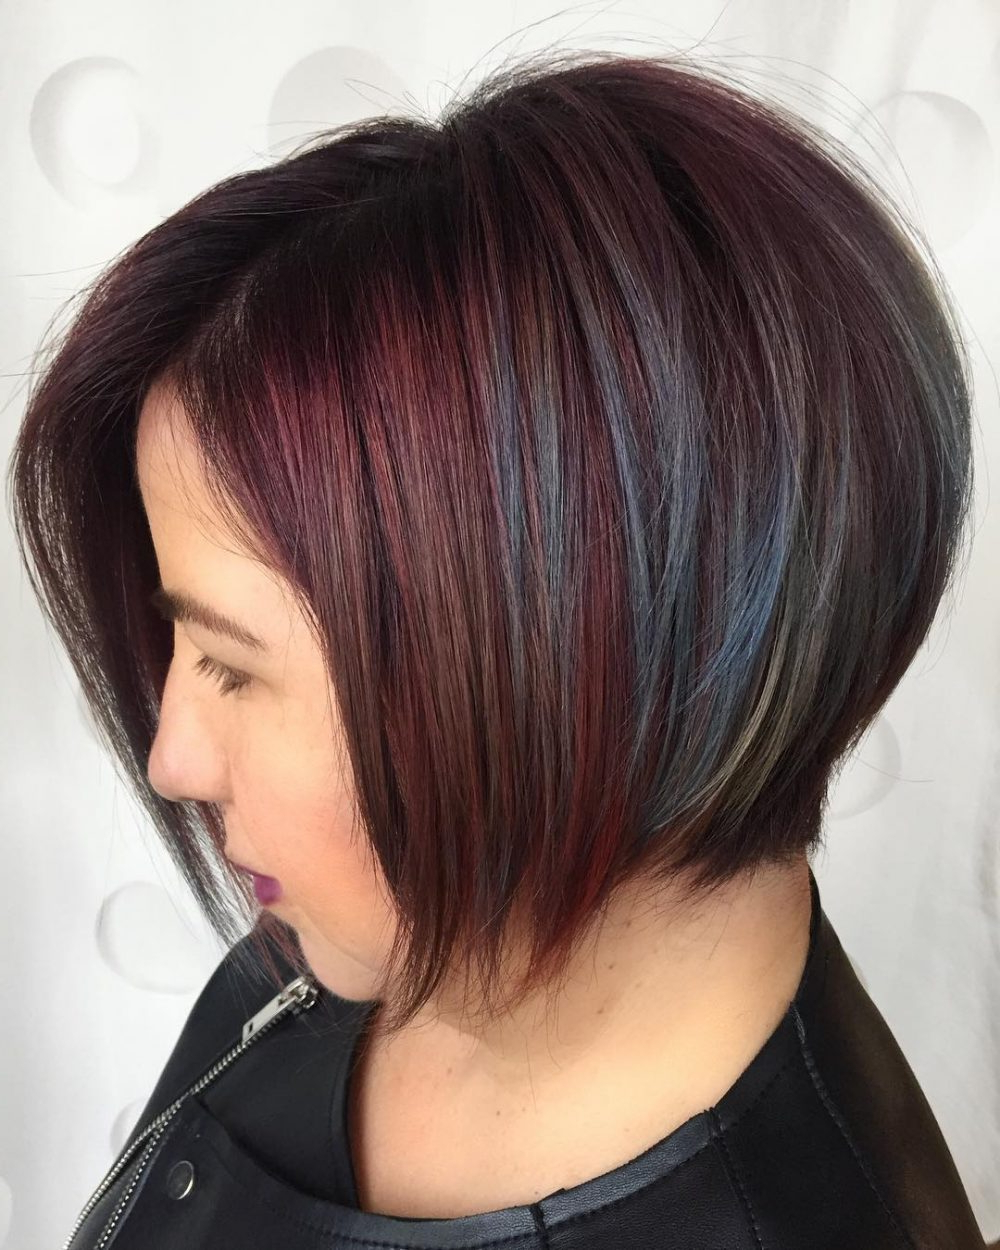 34 Greatest Short Haircuts And Hairstyles For Thick Hair For 2018 With Regard To Edgy Asymmetrical Short Haircuts (View 21 of 25)